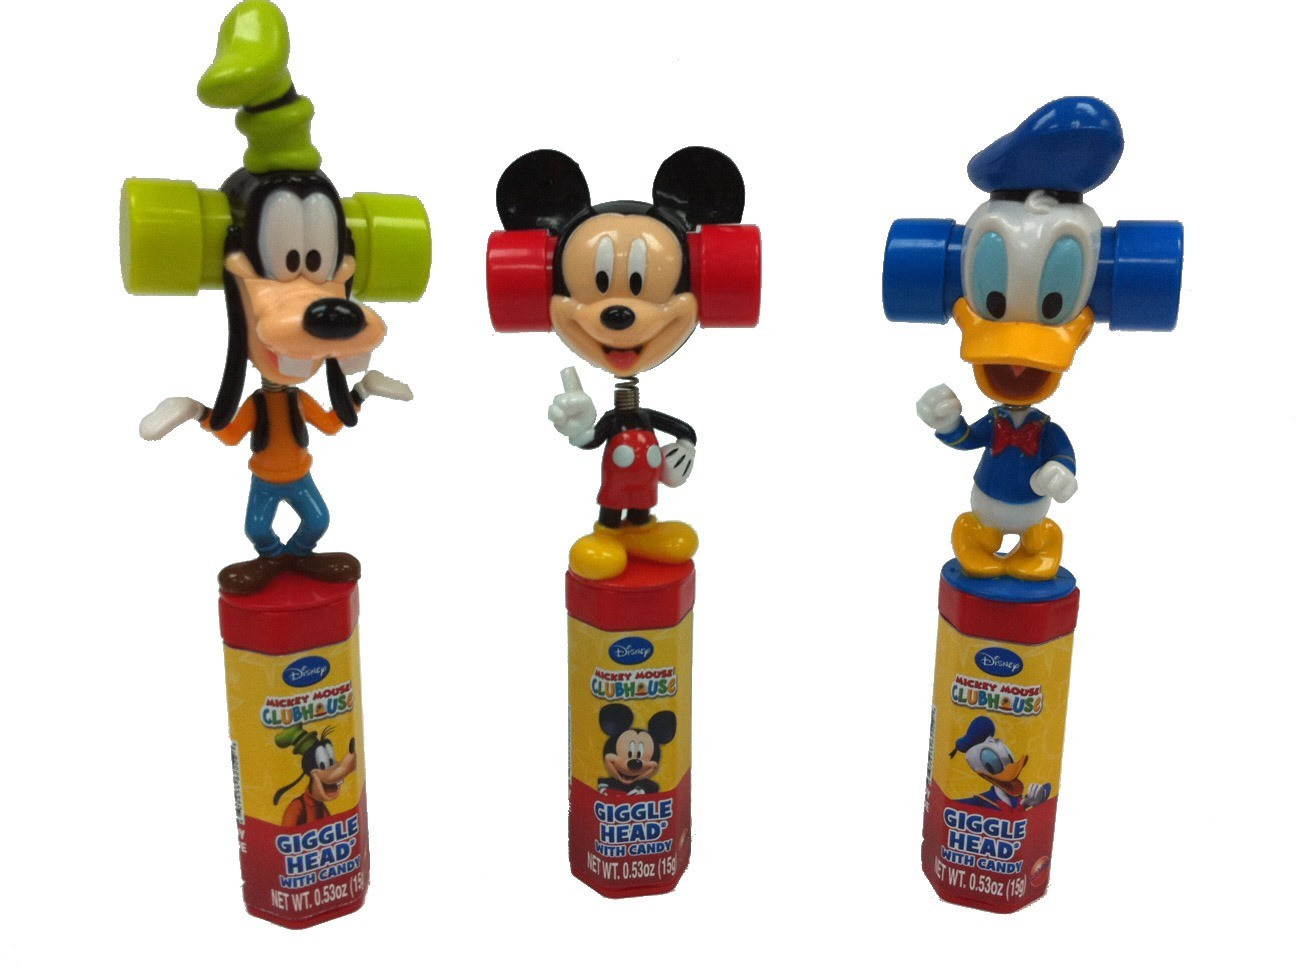 Disney ©Disney Mickey & Friends Giggle Head with candy